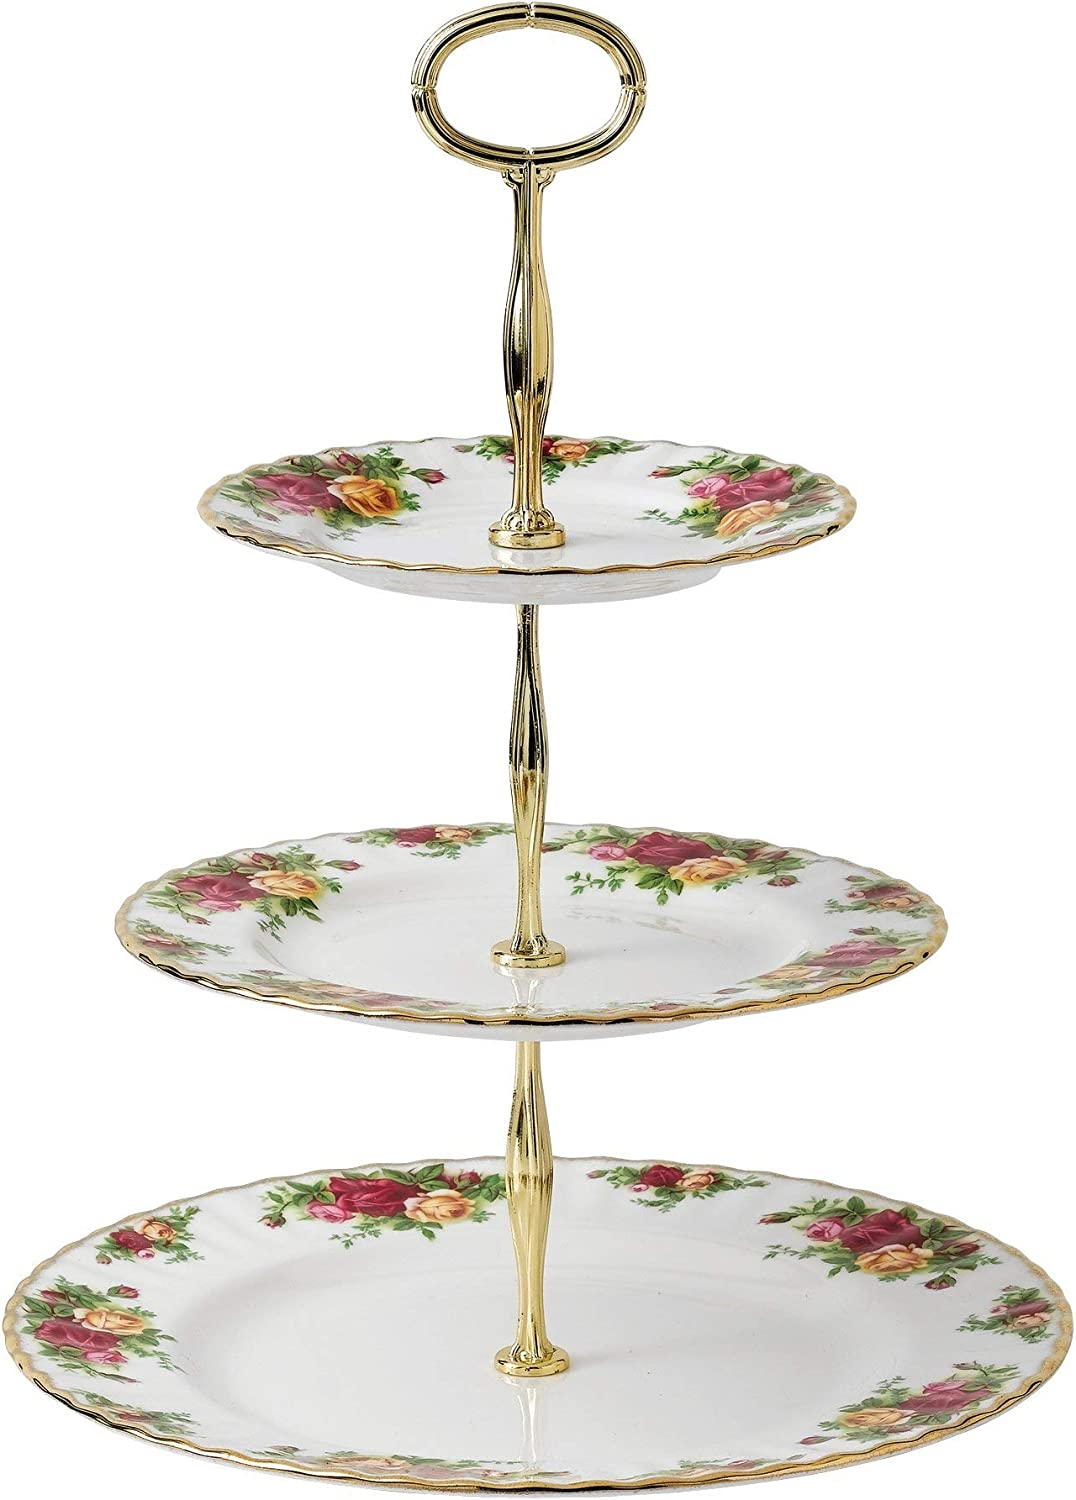 Cheeky Pink Royal Albert 8763026584 New Country Roses Vintage 3-Tier Cake Stand